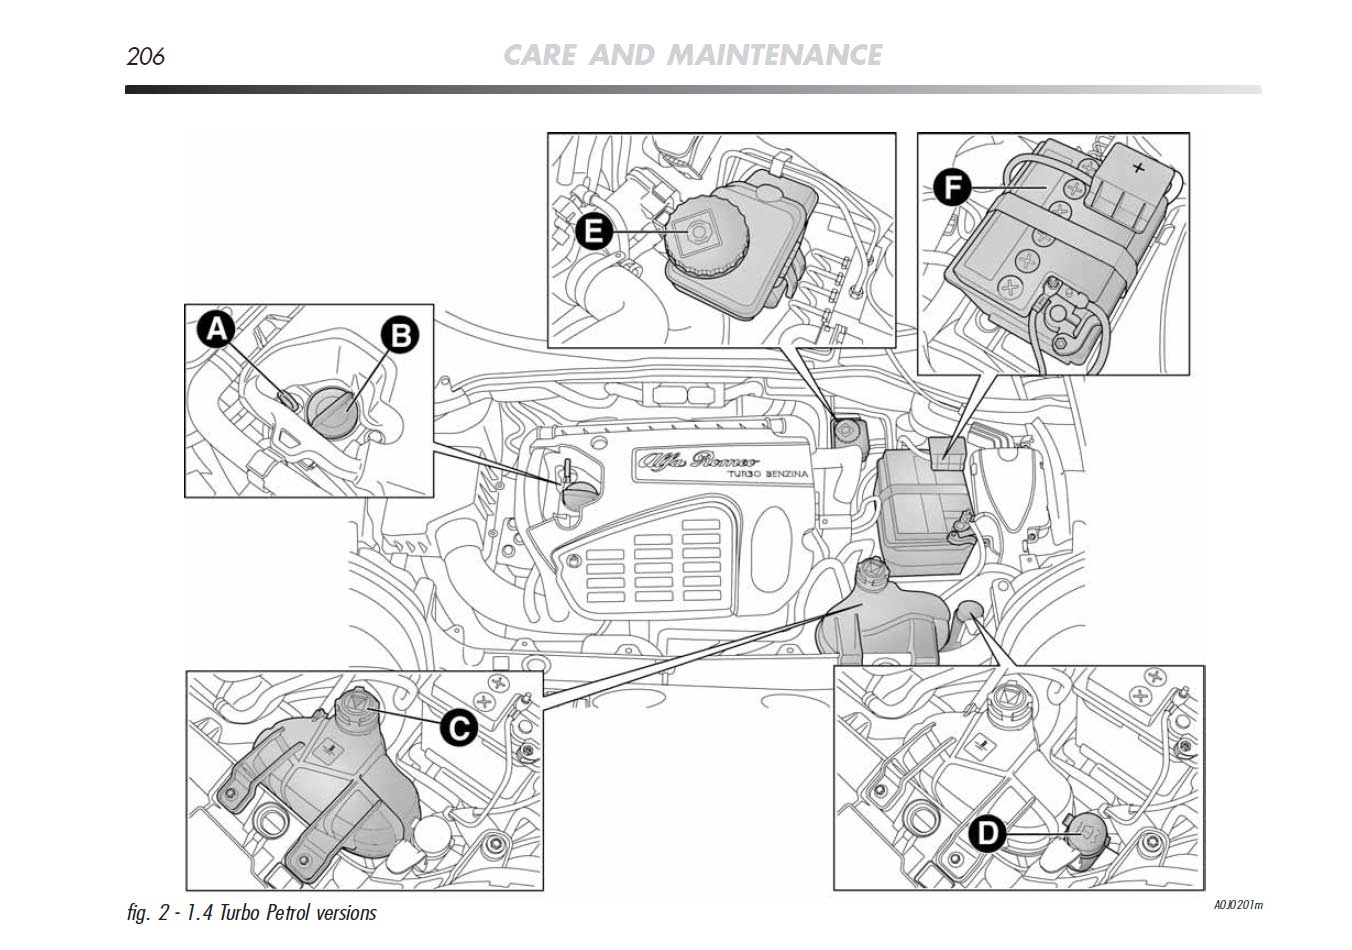 Location of car battery for Alfa Romeo MiTO 1.4 Turbo petrol